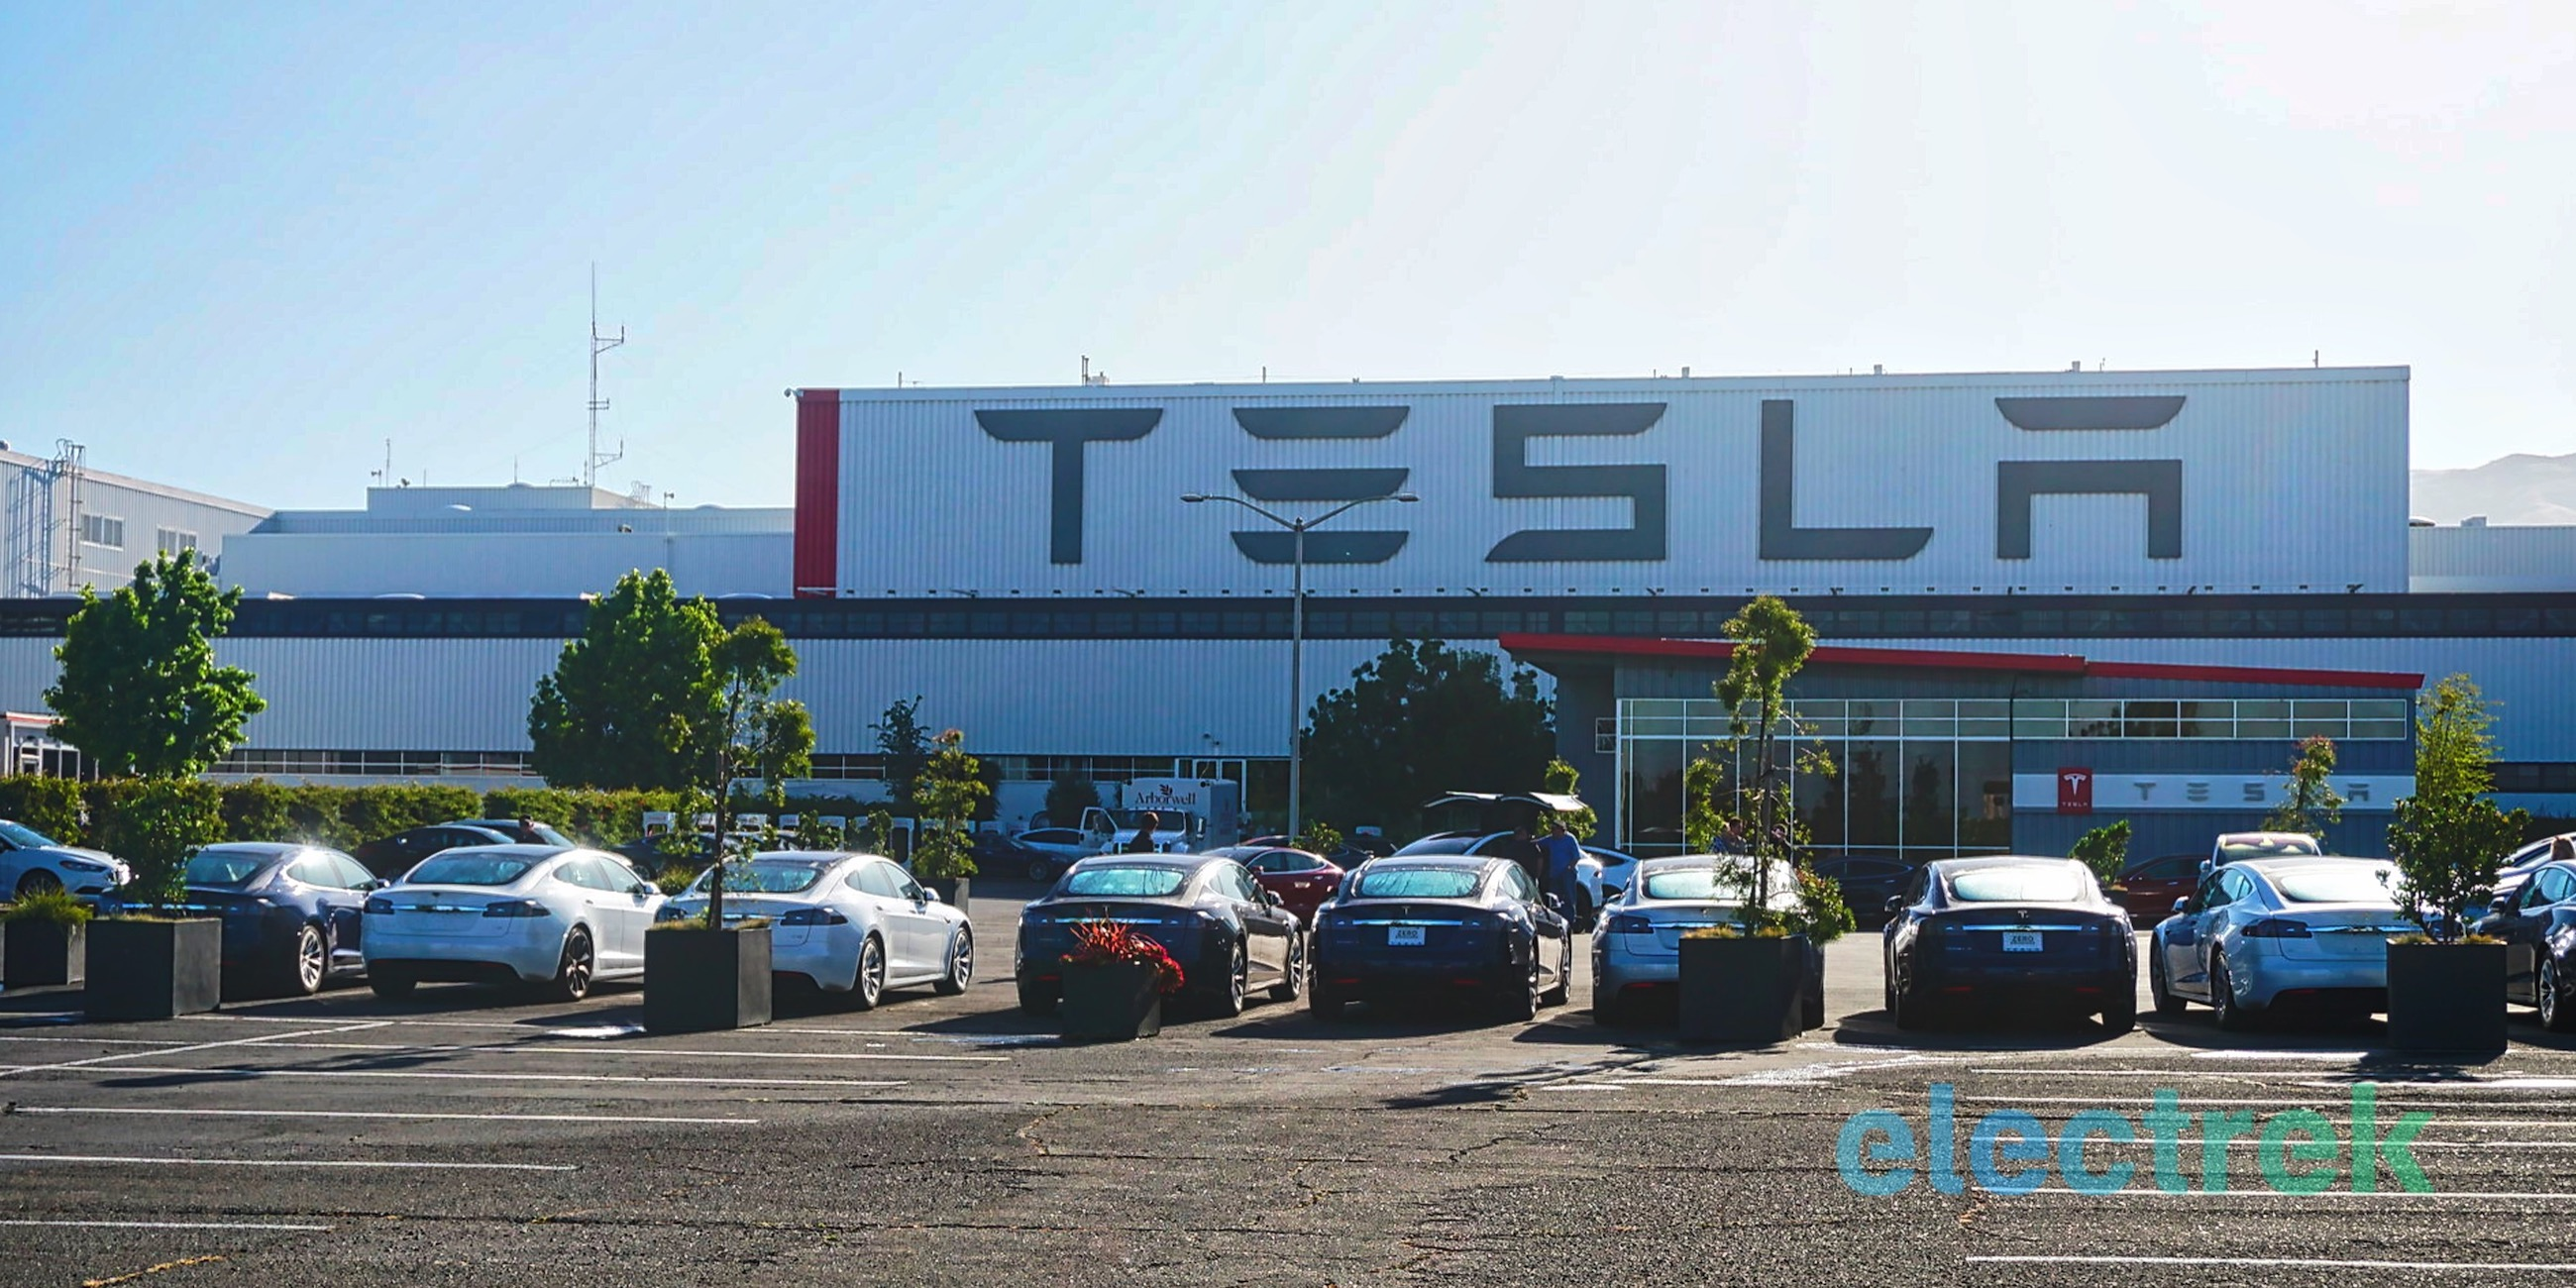 tesla fremont electrek june 2017 021 jpg?quality=82&strip=all